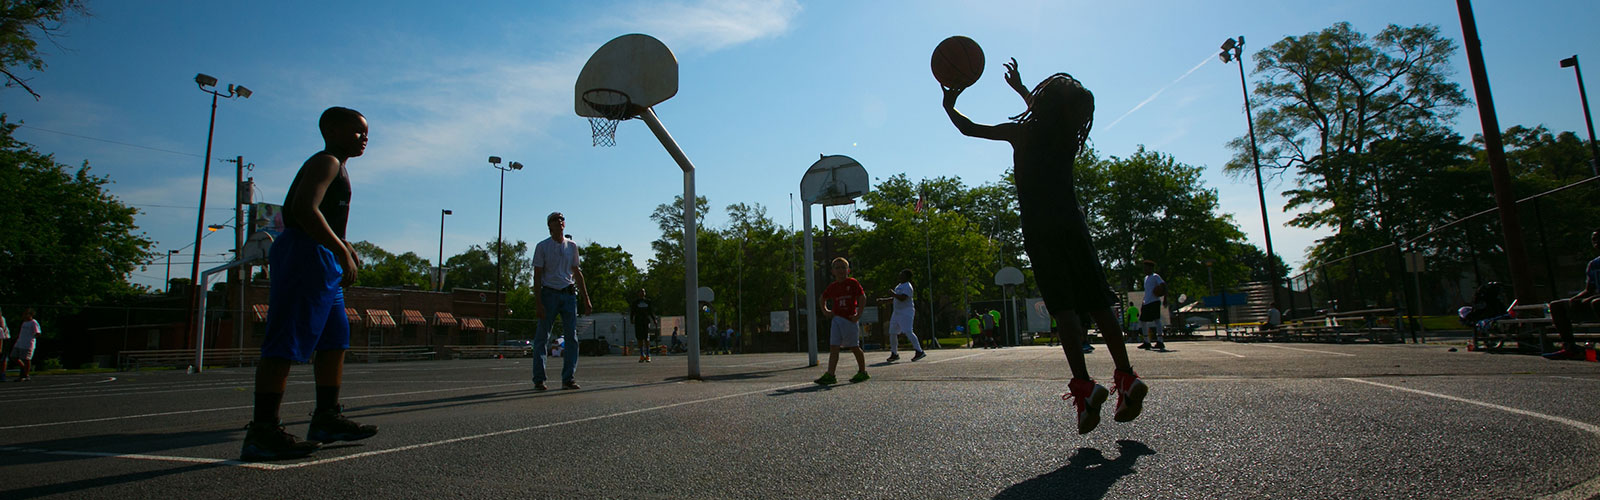 Young men playing basketball outdoors